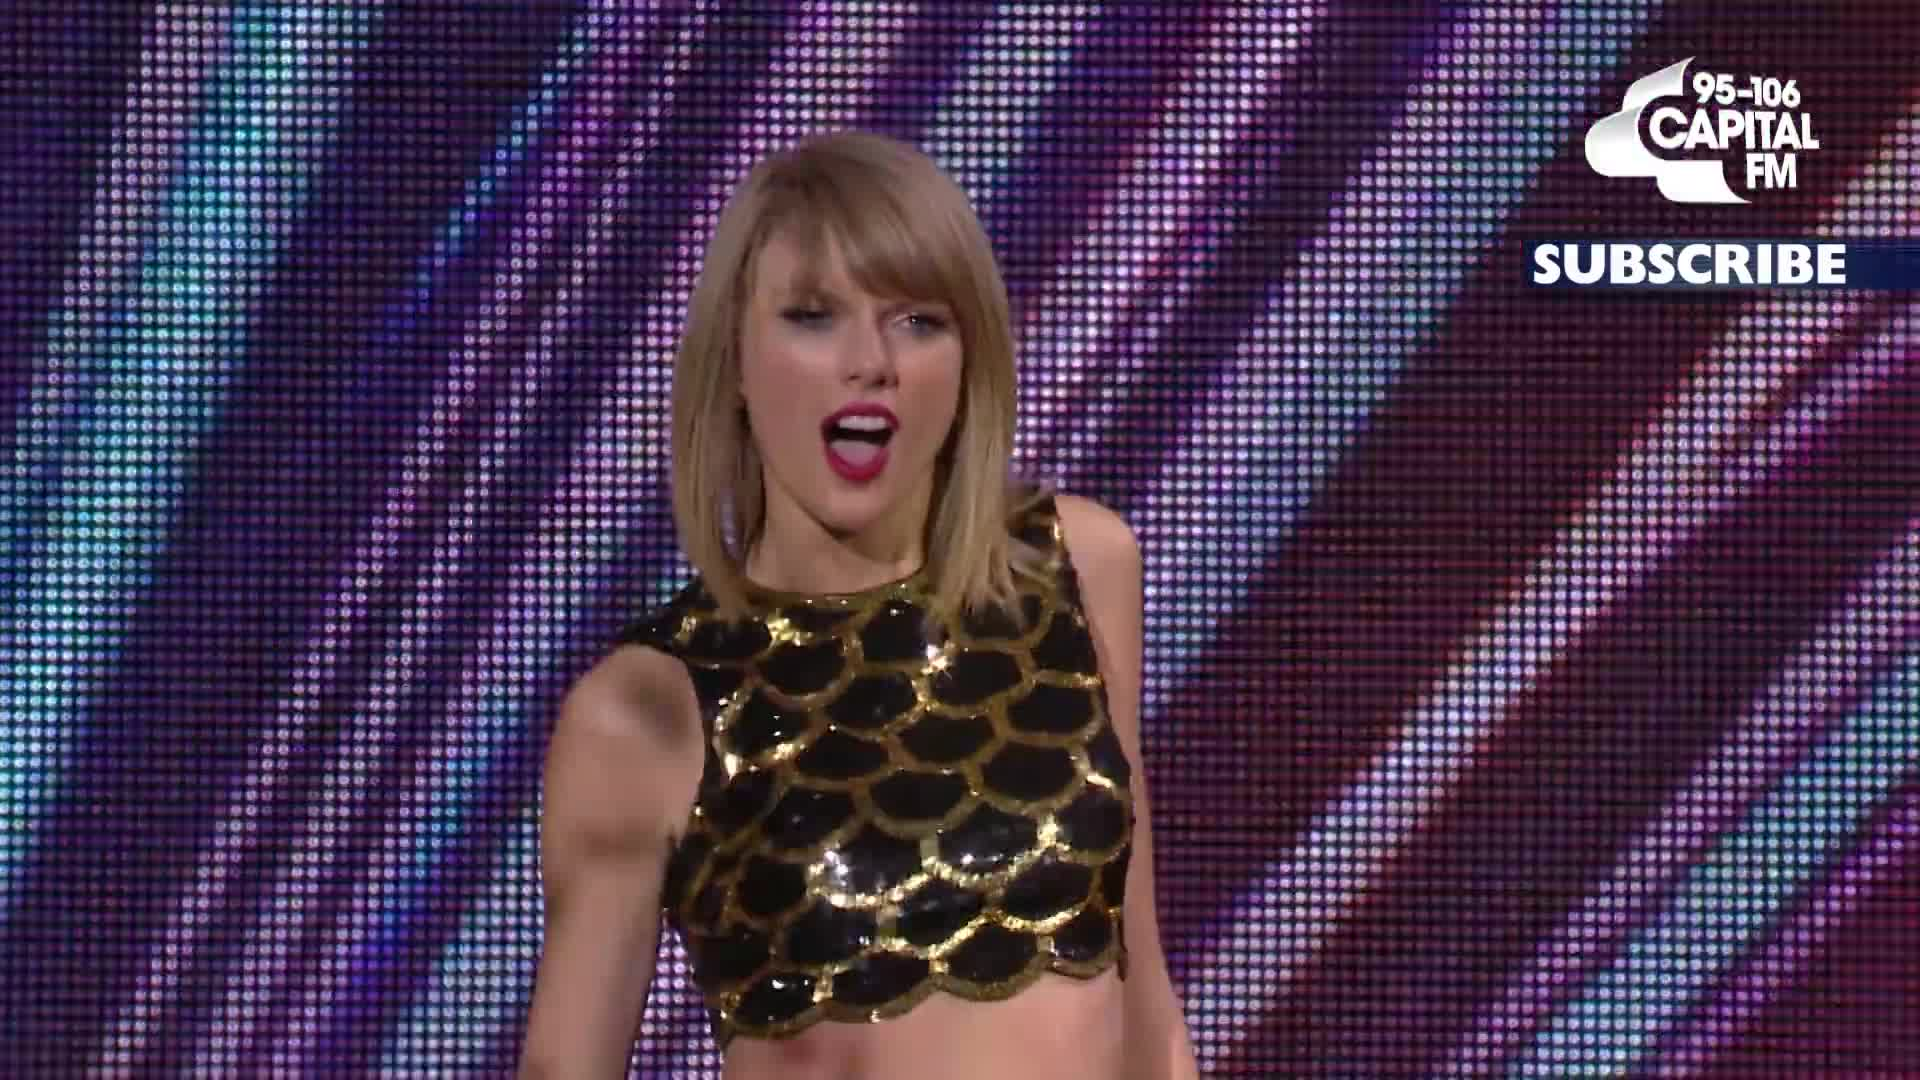 Taylor Swift Live At Capital Fm Gifs Search | Search & Share